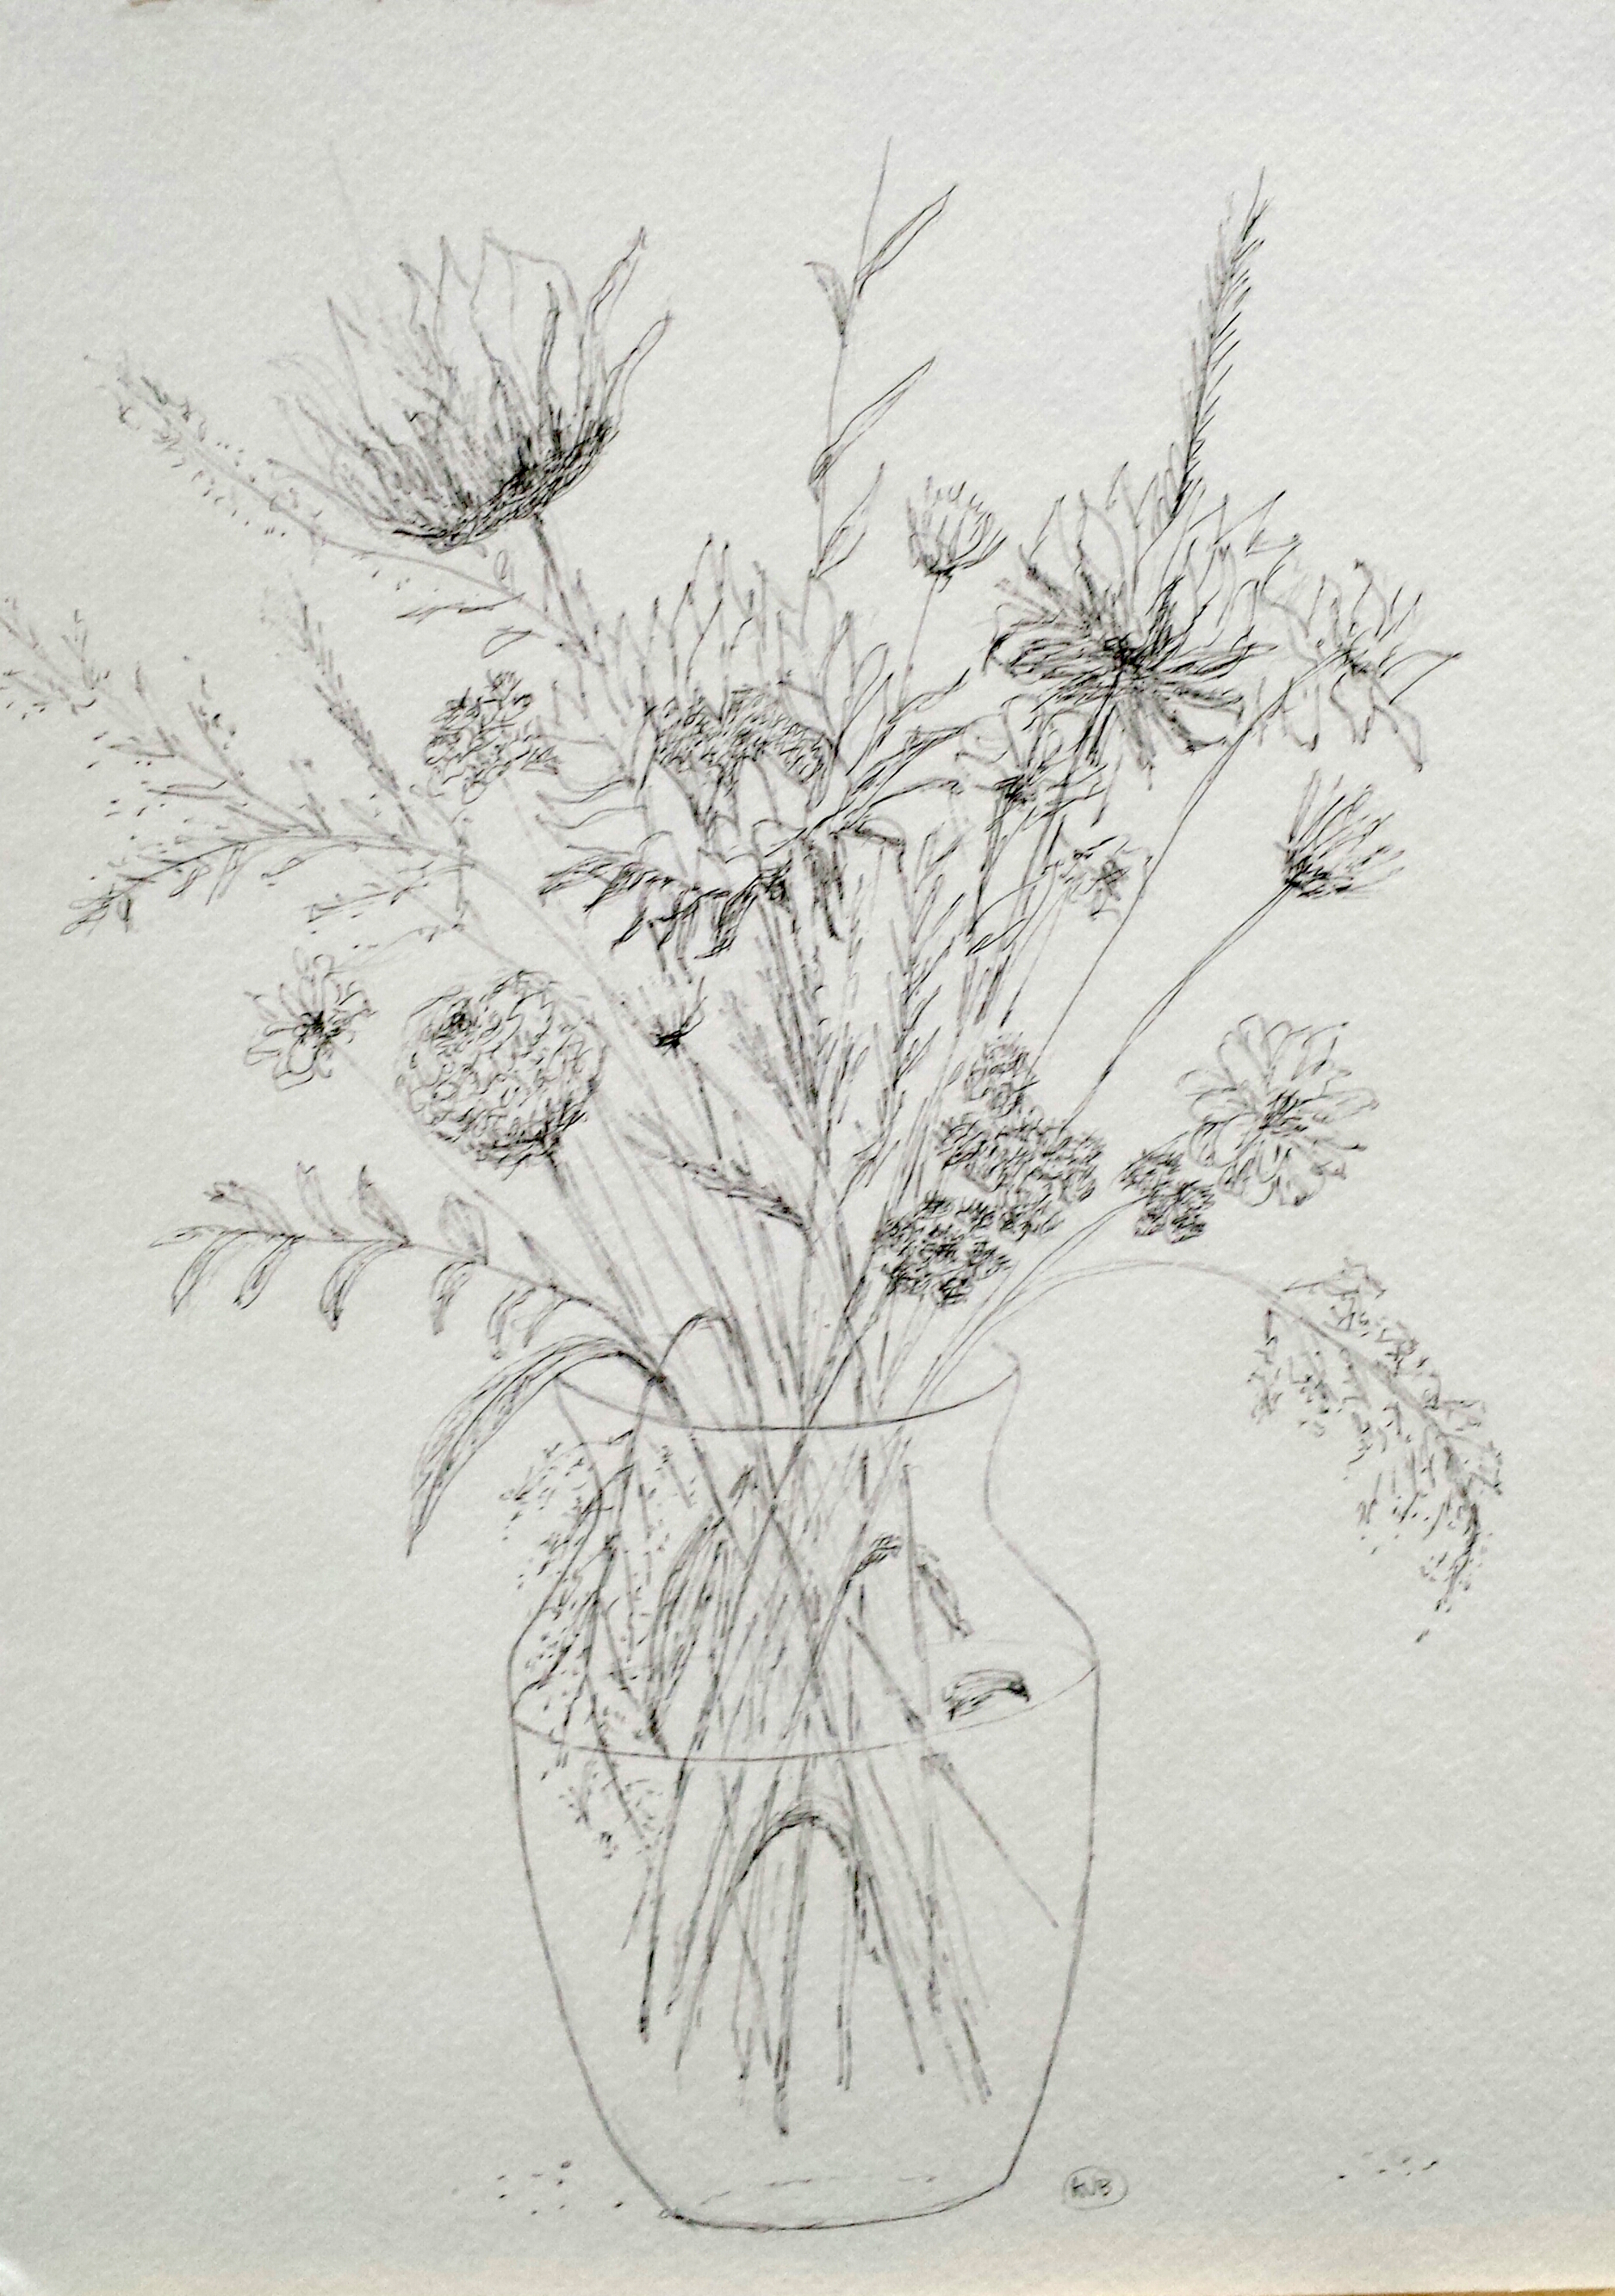 Sunflowers, graphite, 2016